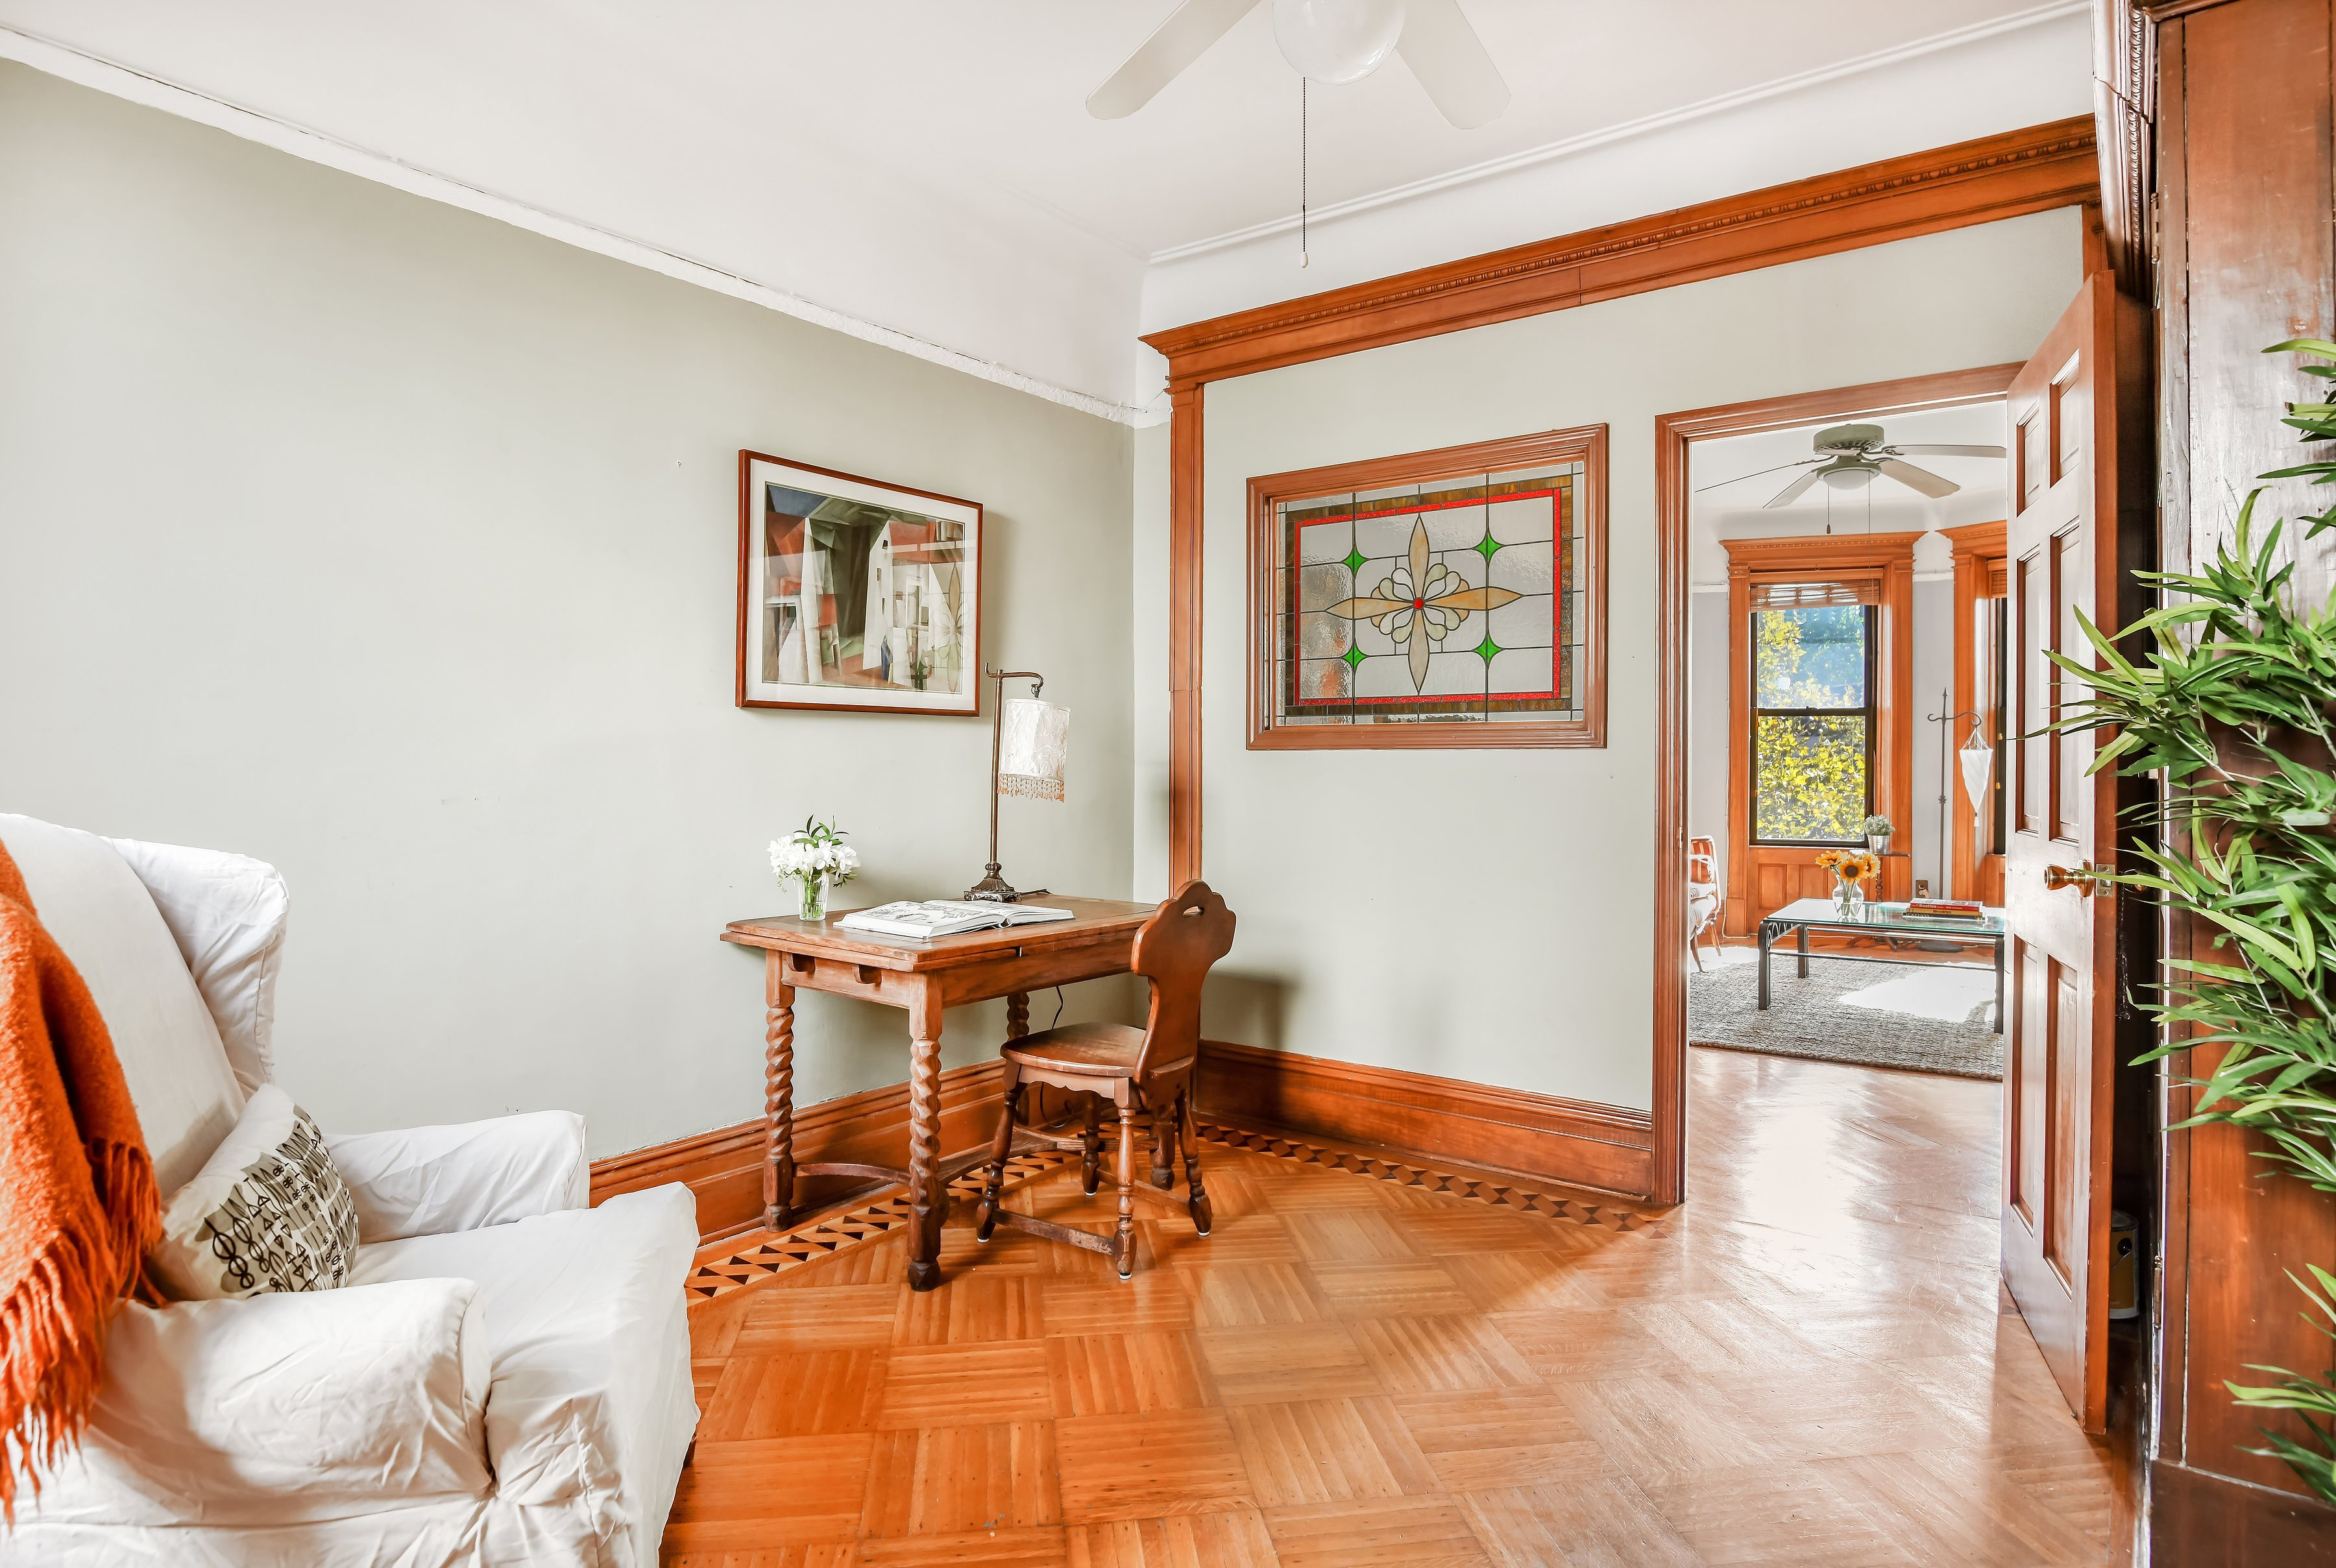 Best Big Reveal 849K For A Park Sl*P* Apartment With Ornate Woodwork Curbed Ny With Pictures